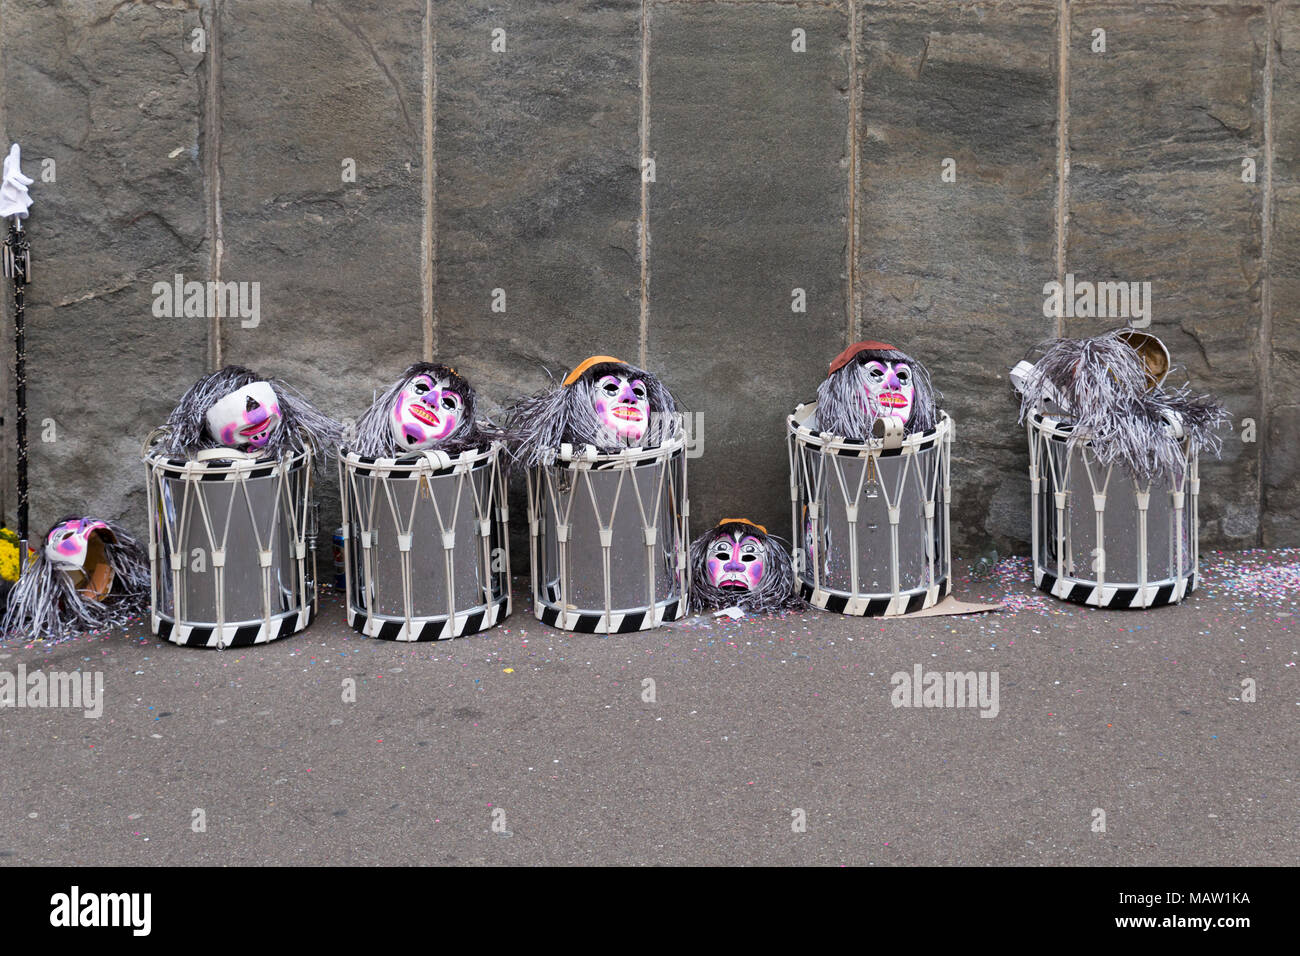 Basel carnival. Spiegelgasse, Basel, Switzerland - February 21st, 2018. Line of snare drums and masks in front of a gray wall - Stock Image